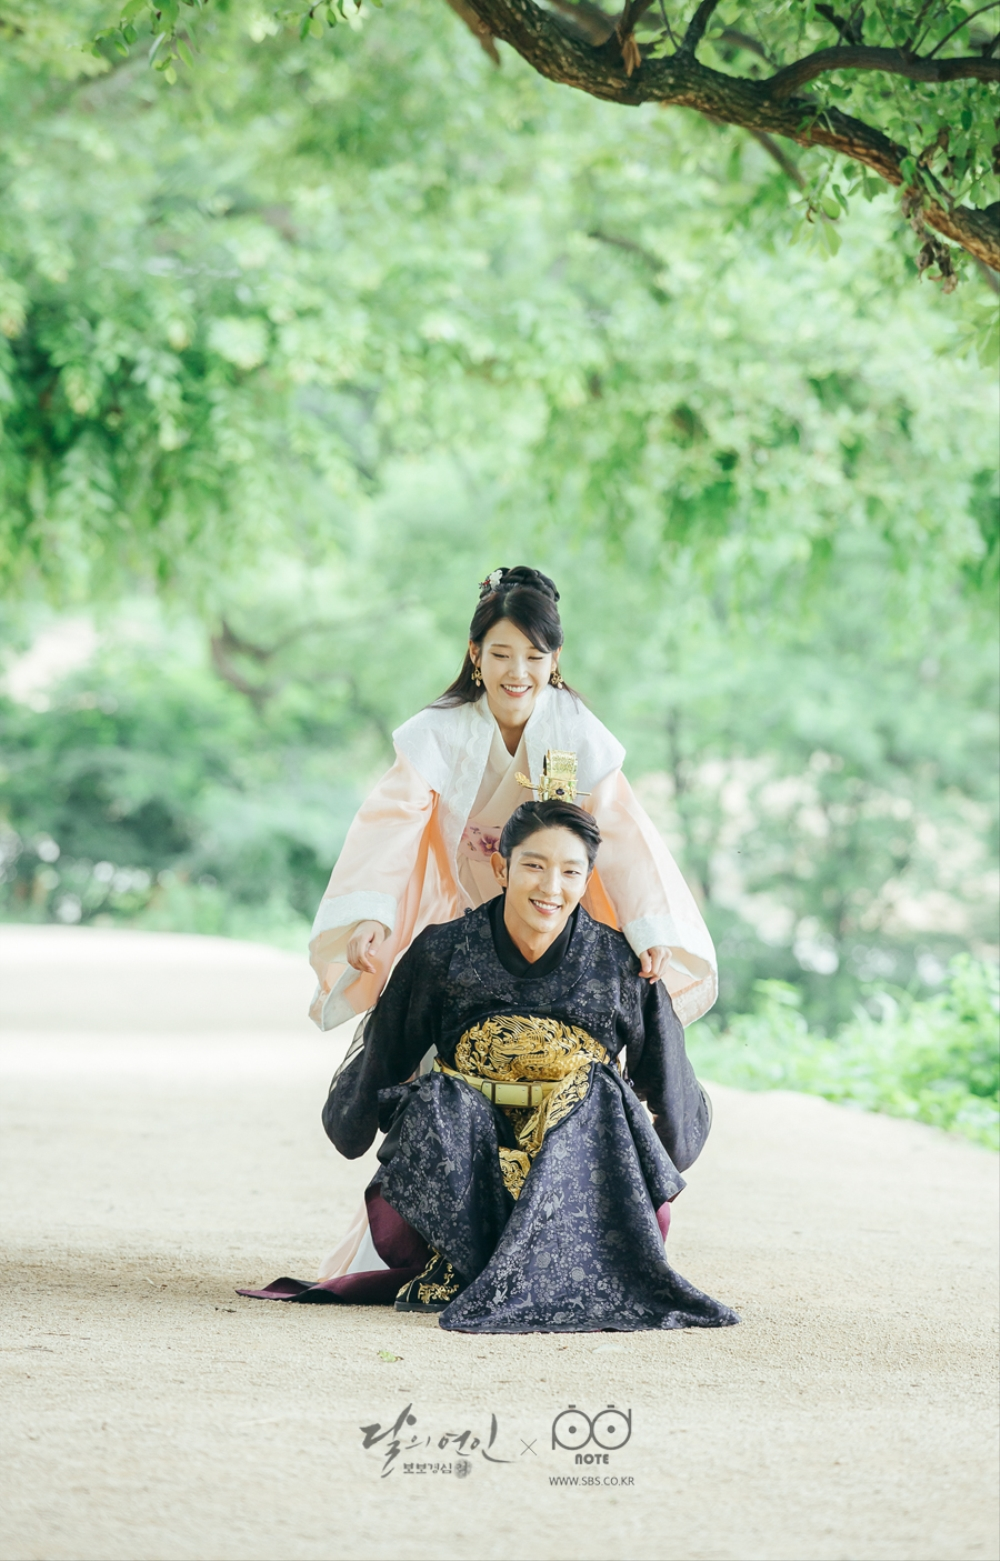 Full Hd Kiss Wallpaper Download Moon Lovers Scarlet Heart Ryeo K Drama Page 6 Of 59